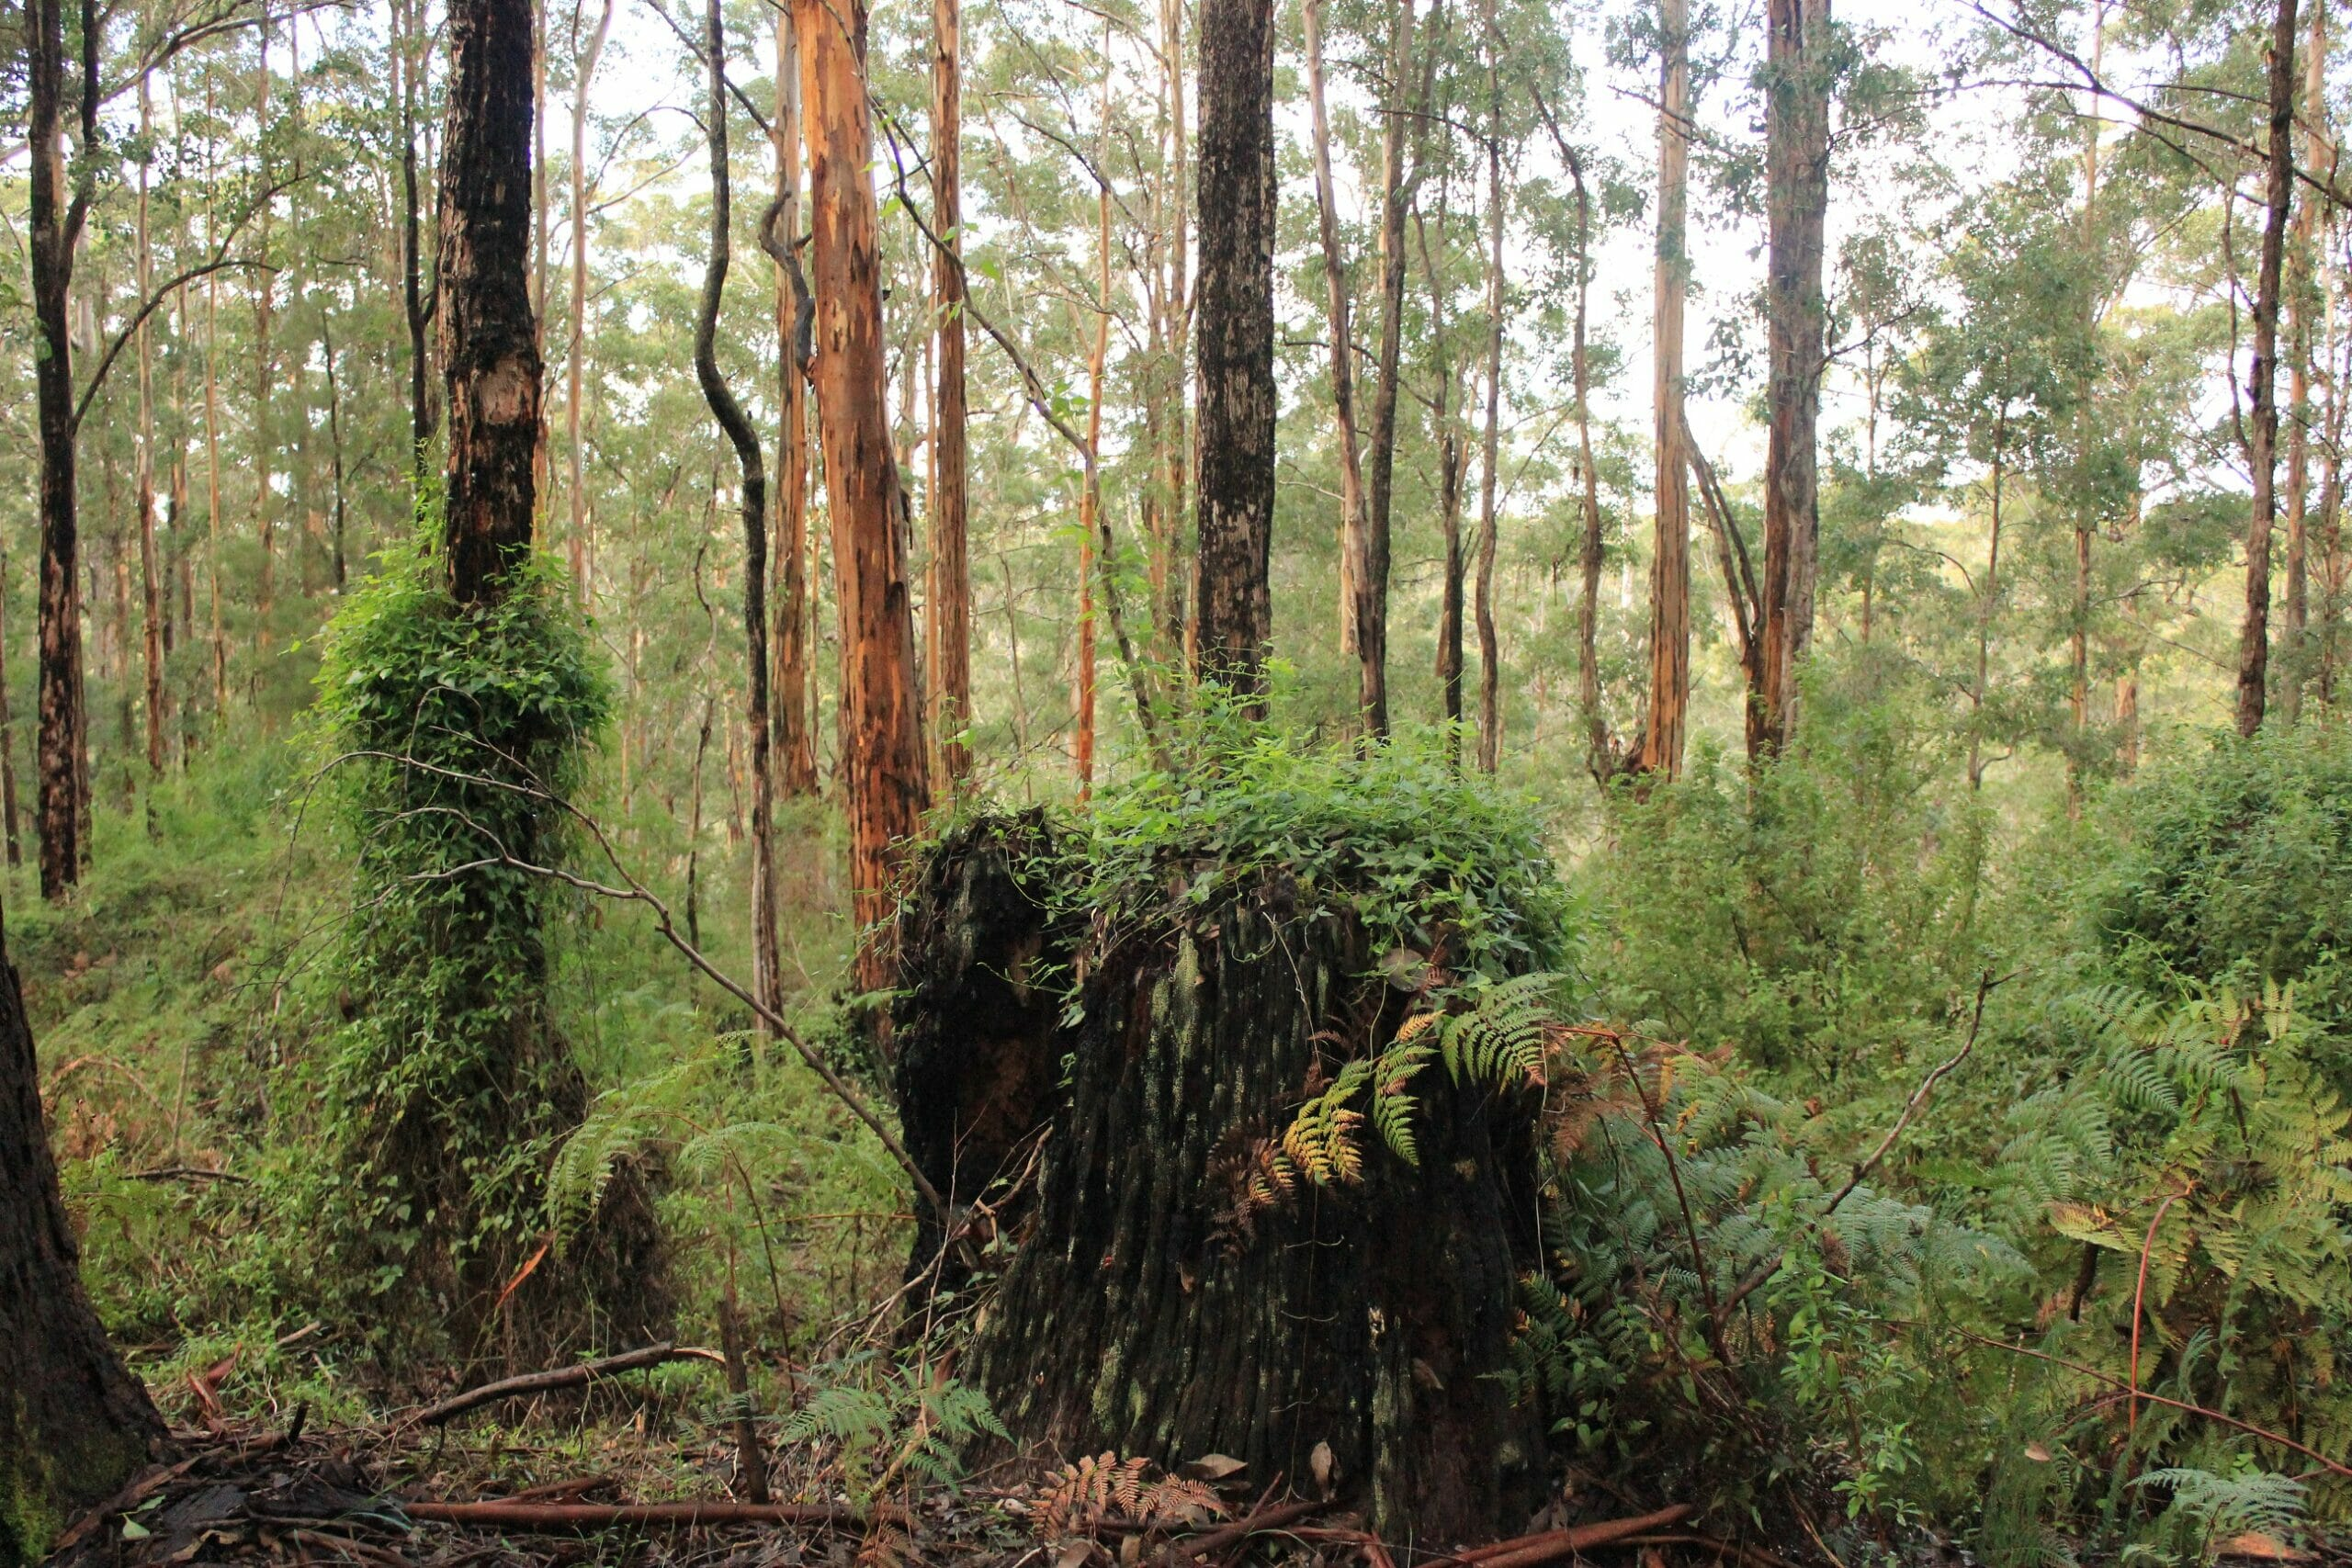 Southern Forests Weekender Experience